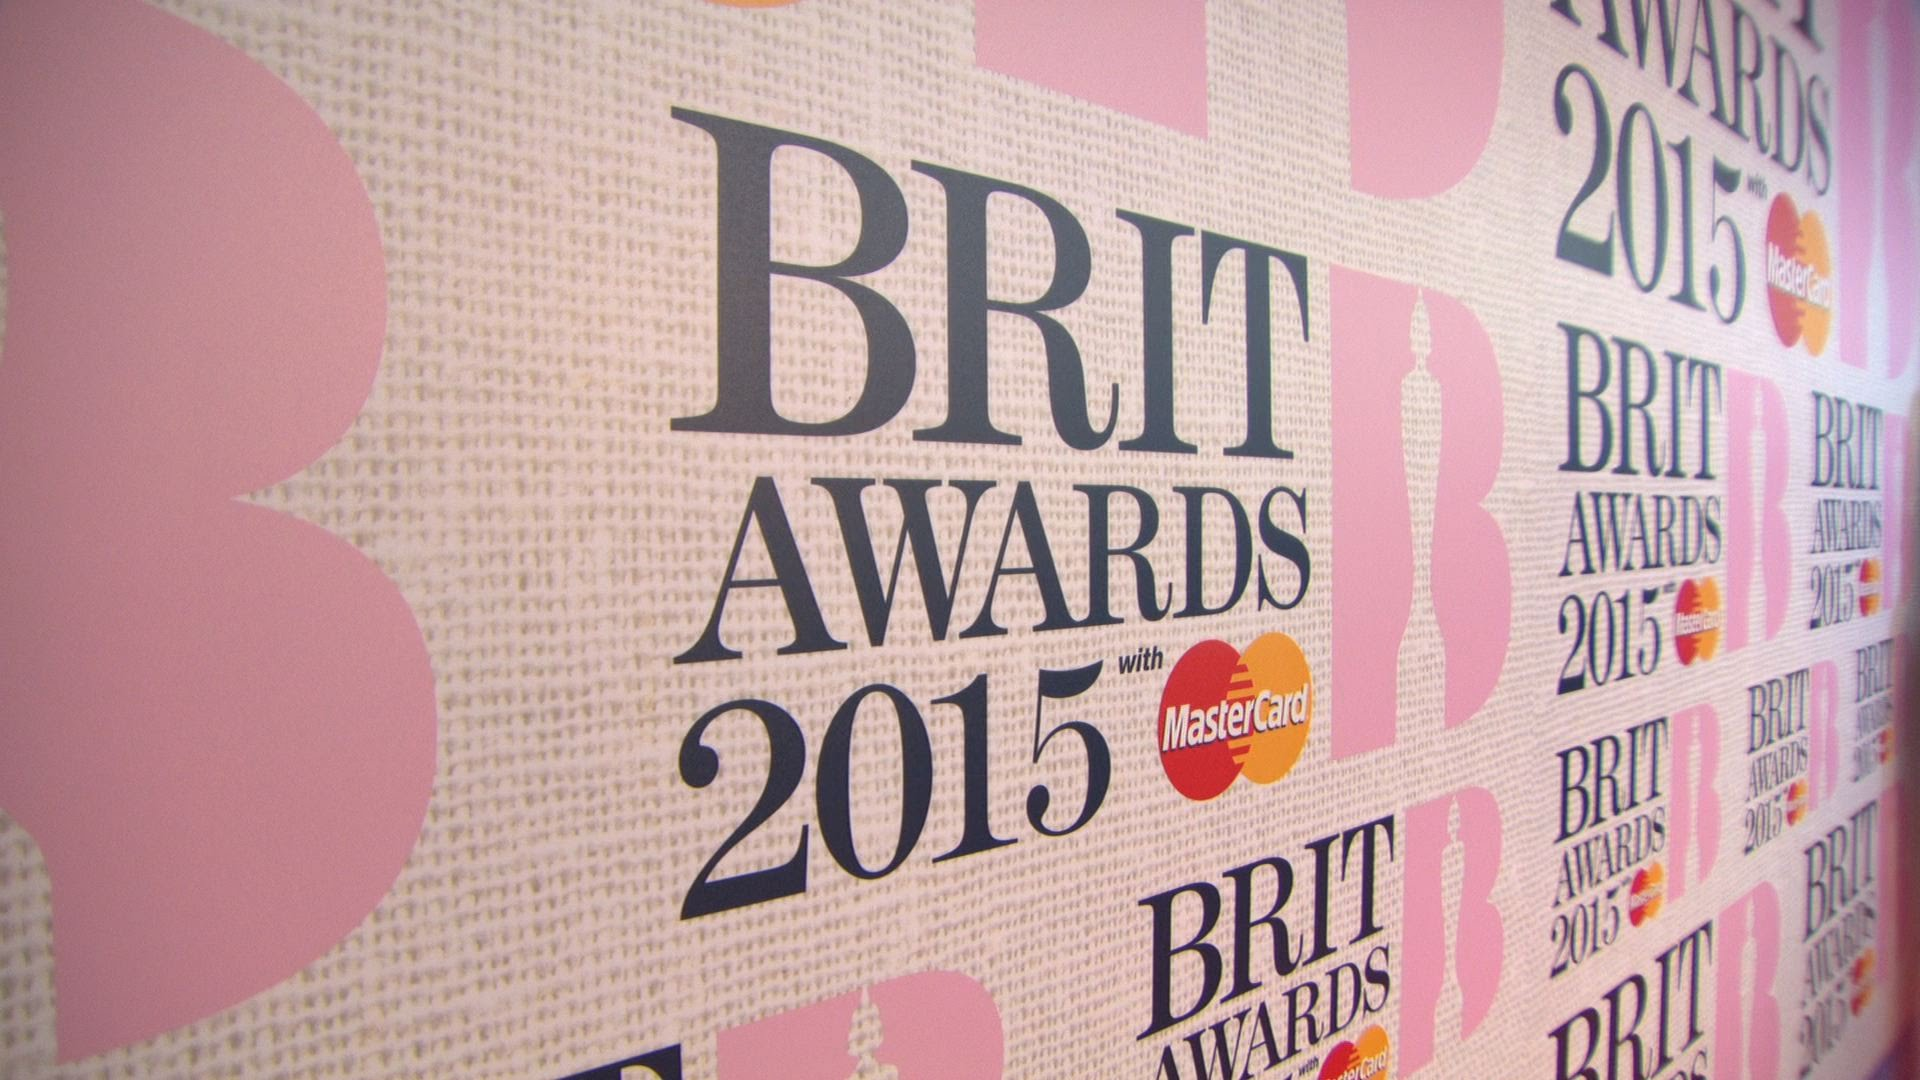 BRIT Awards 2015: Results and highlights